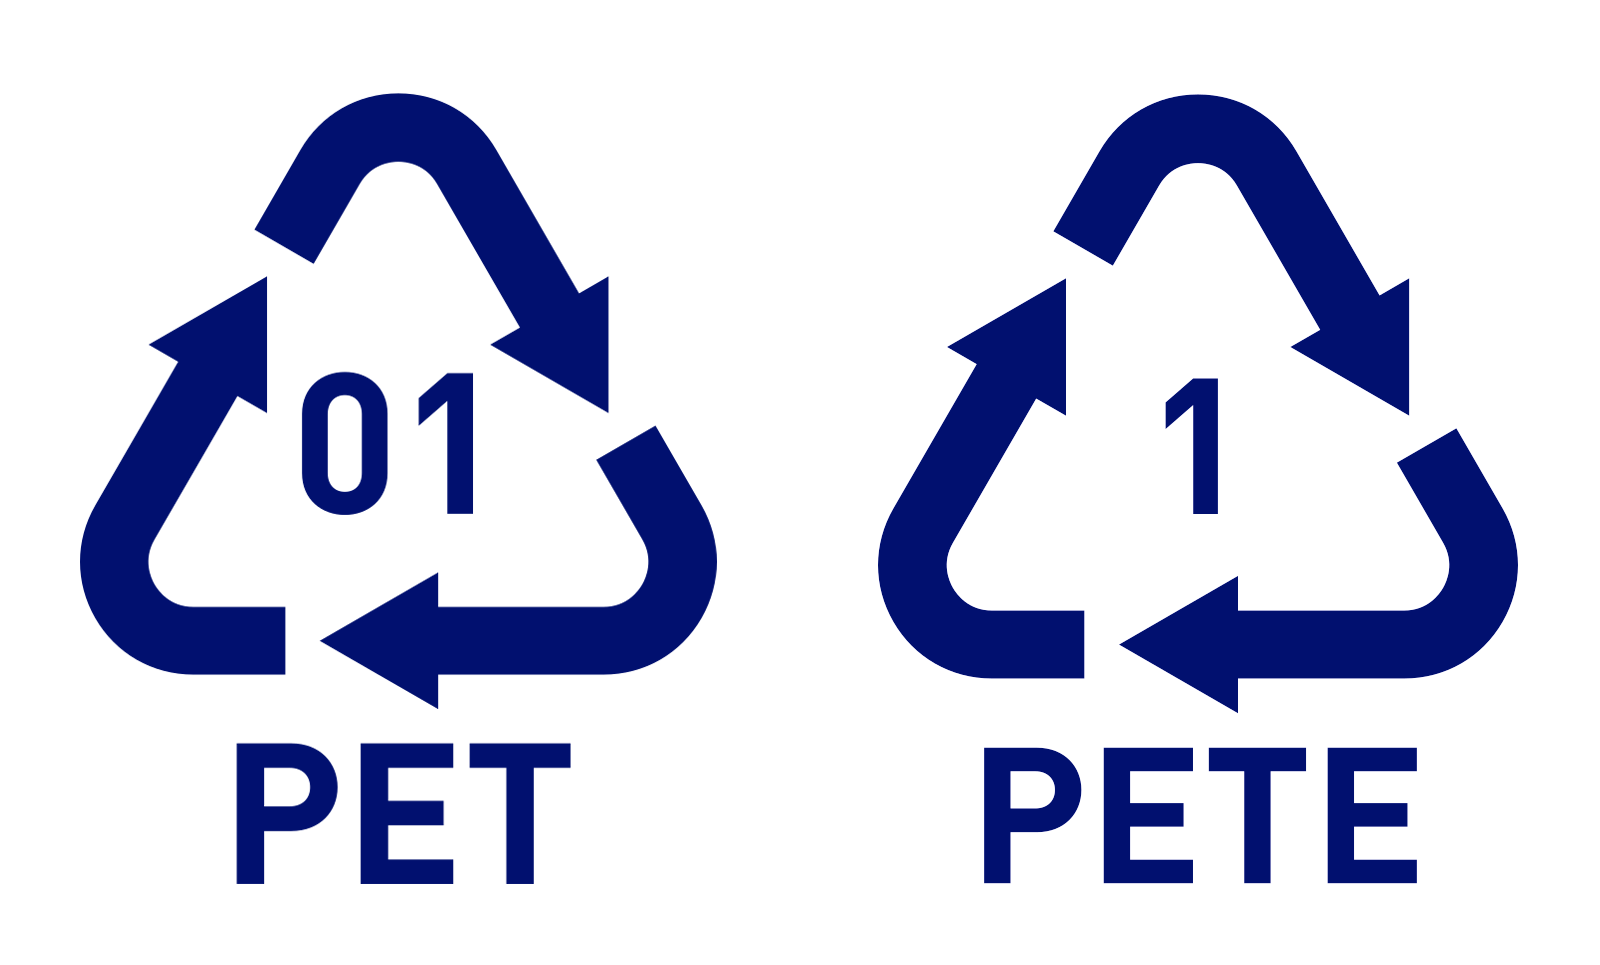 PET-PETE Recyclable Plastic Marks